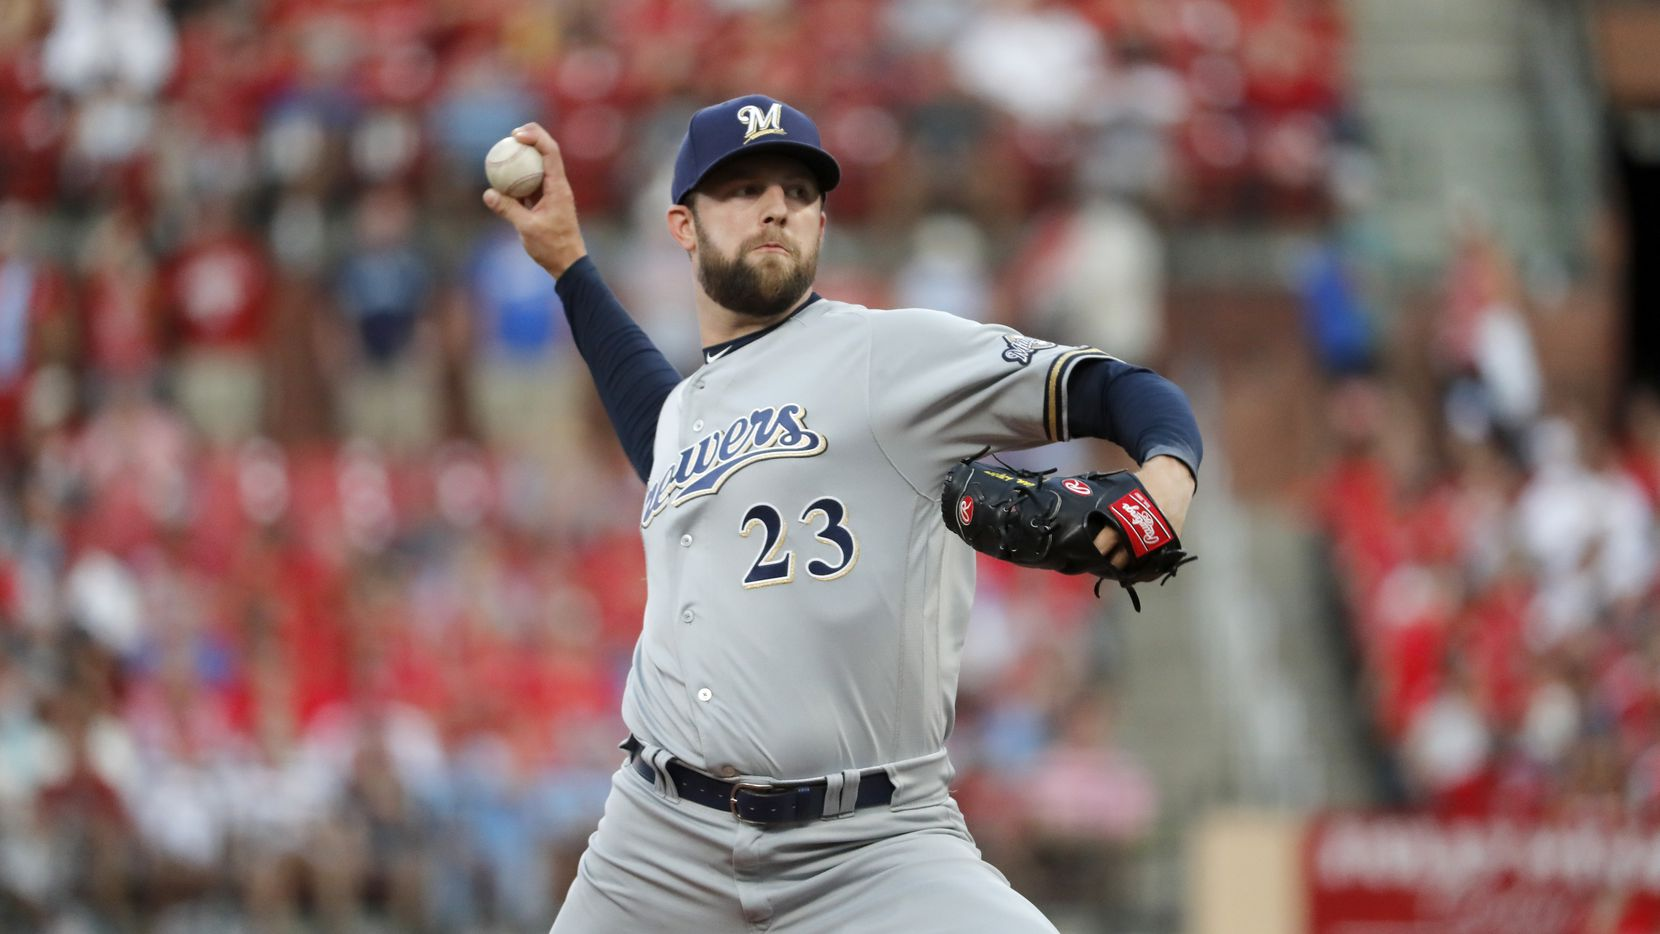 Milwaukee Brewers starting pitcher Jordan Lyles throws during the first inning of a baseball game against the St. Louis Cardinals Saturday, Sept. 14, 2019, in St. Louis. (AP Photo/Jeff Roberson)